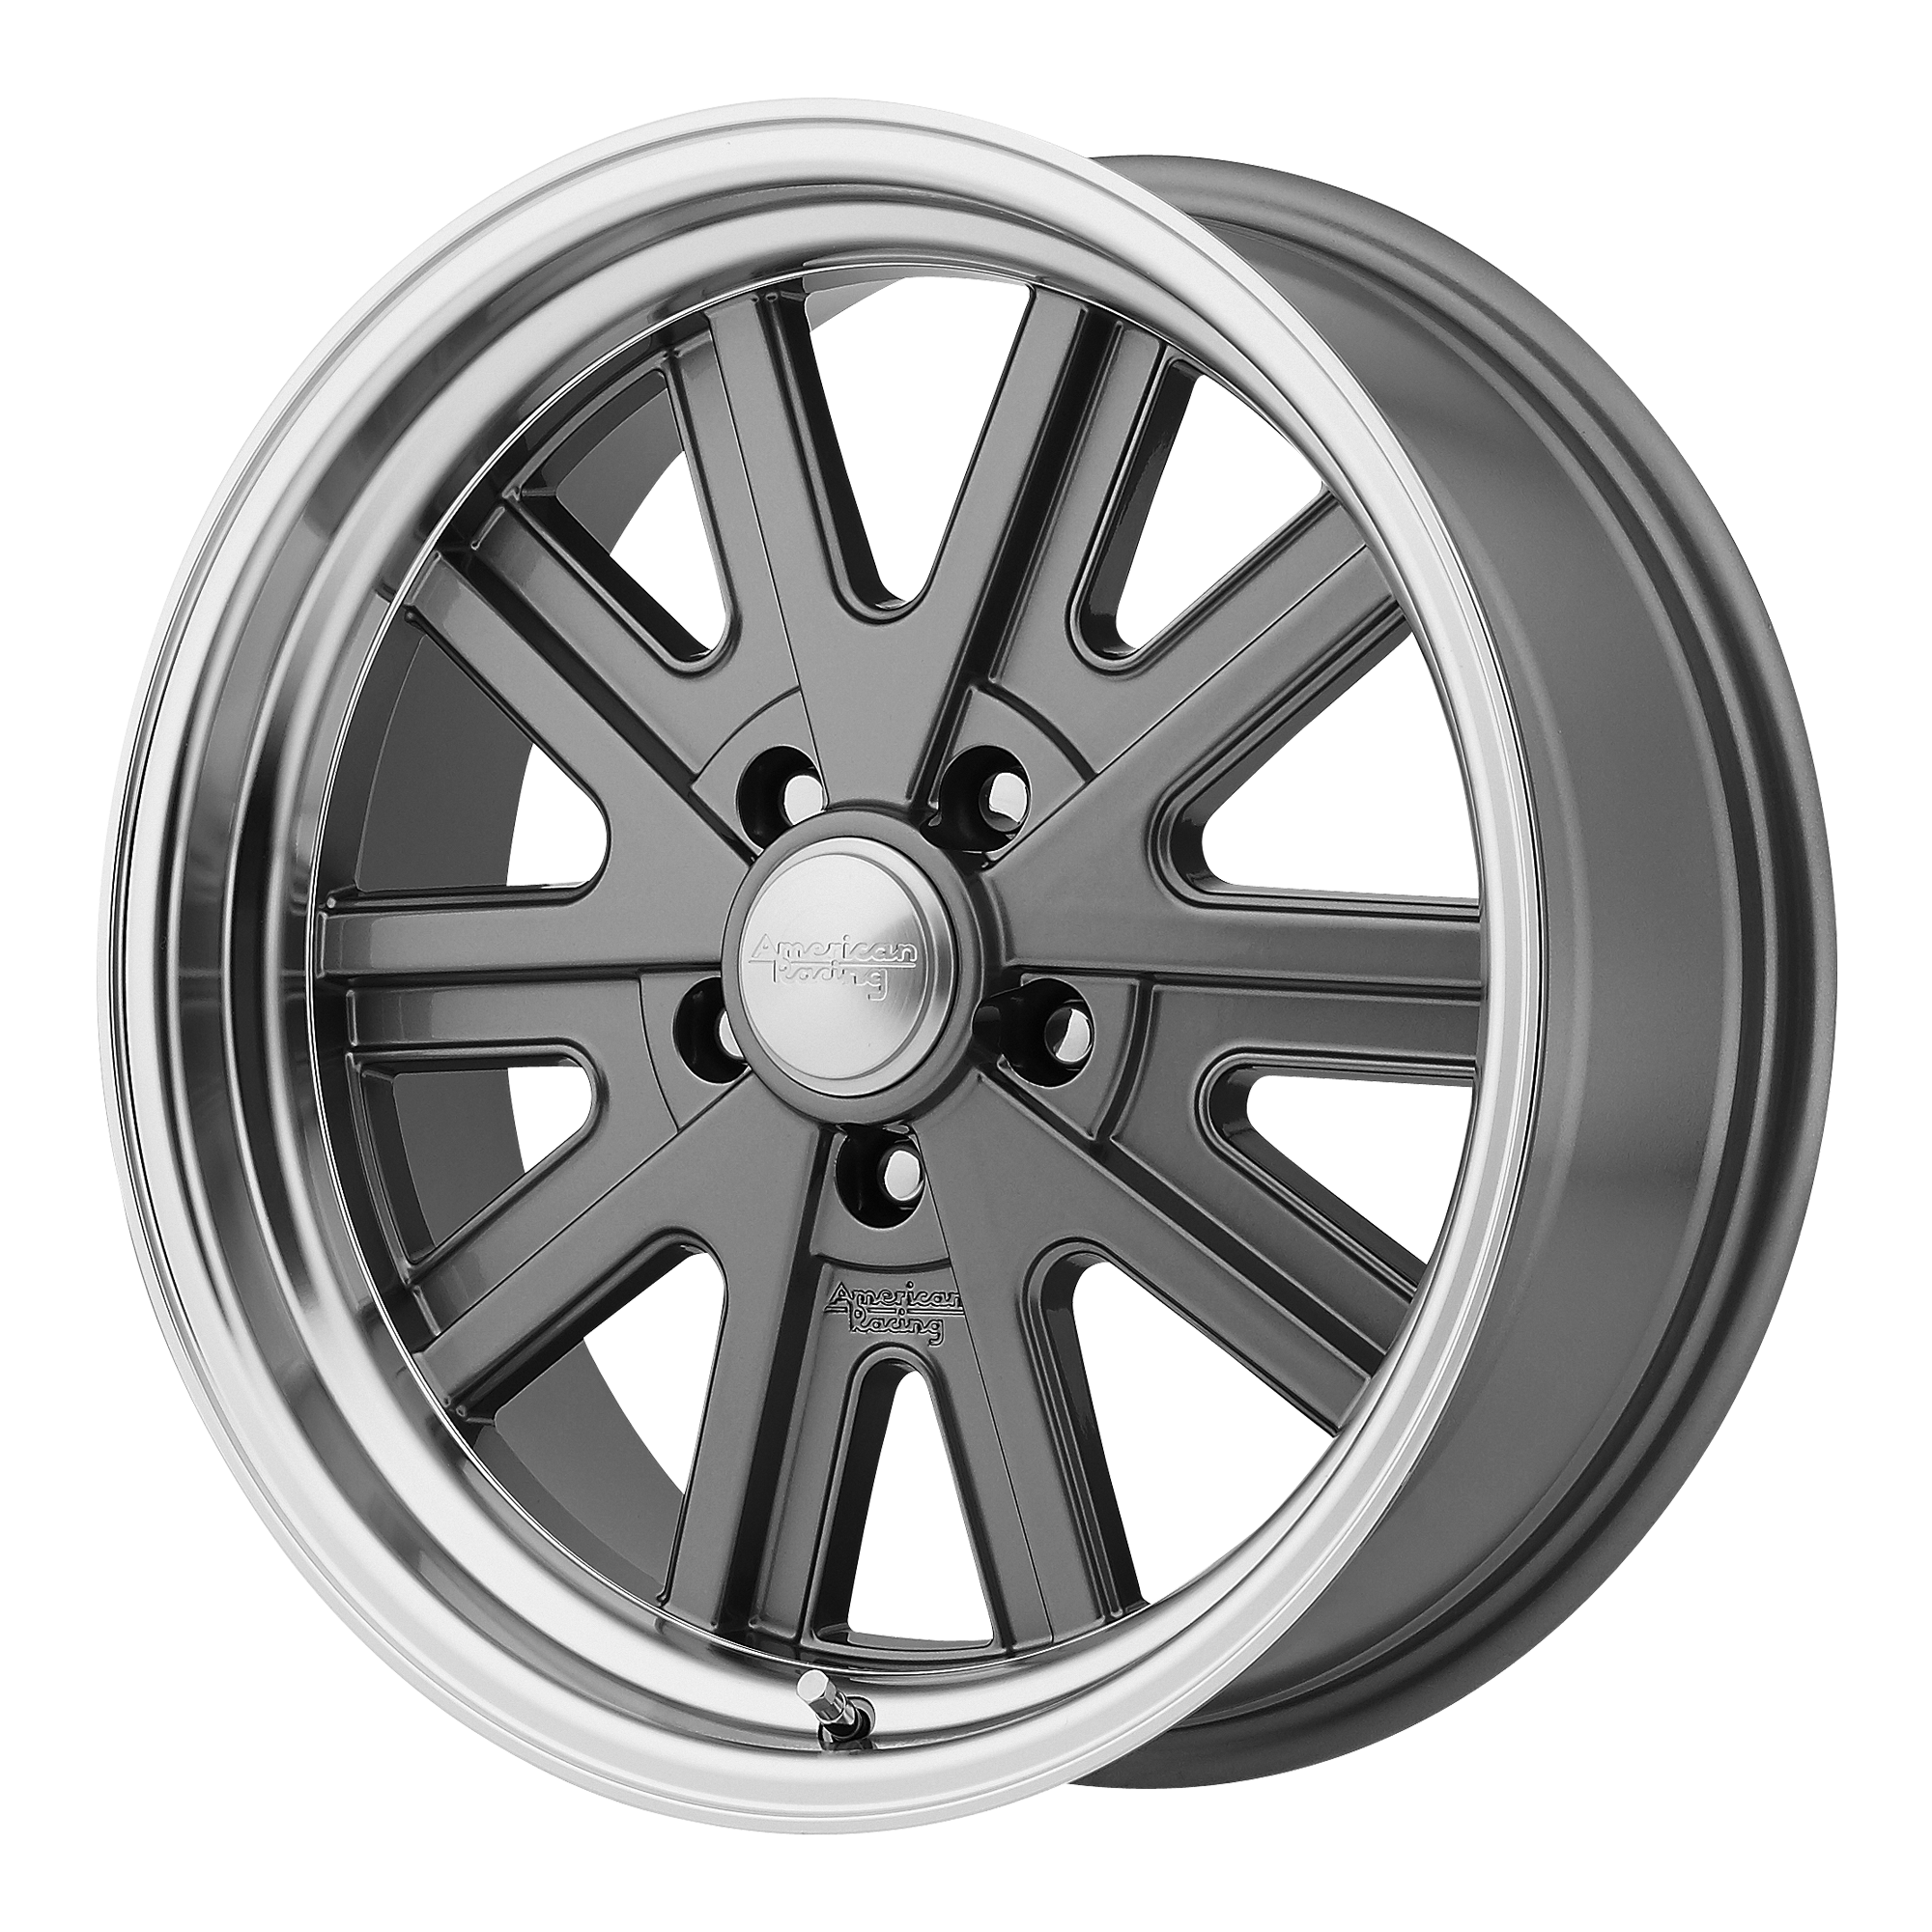 American Racing Wheels VN527 427 MONO CAST Gray